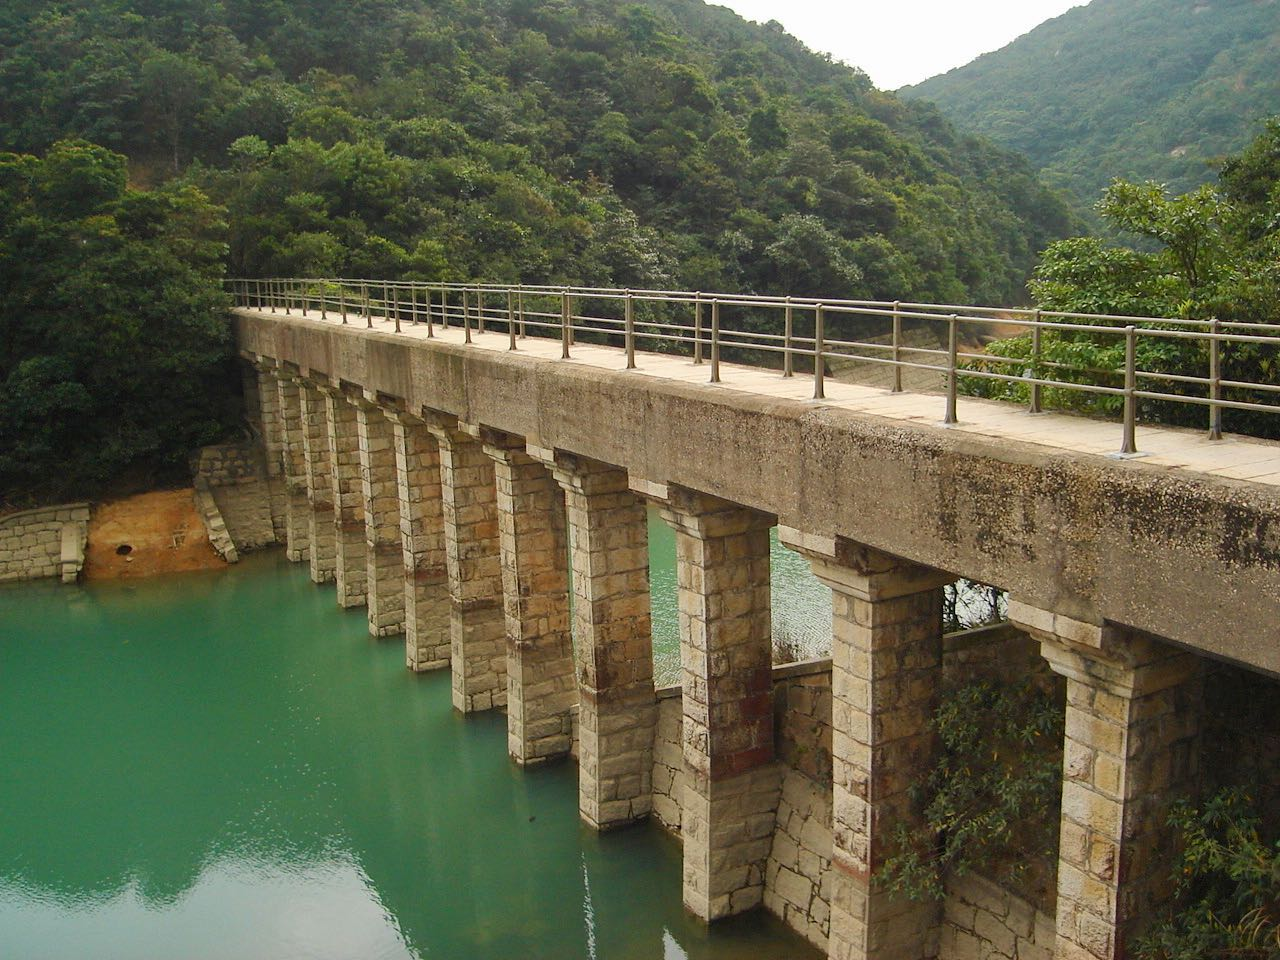 Tai Tam Reservoir in Hong Kong. February 2007, Sony Cybershot DSC-S40